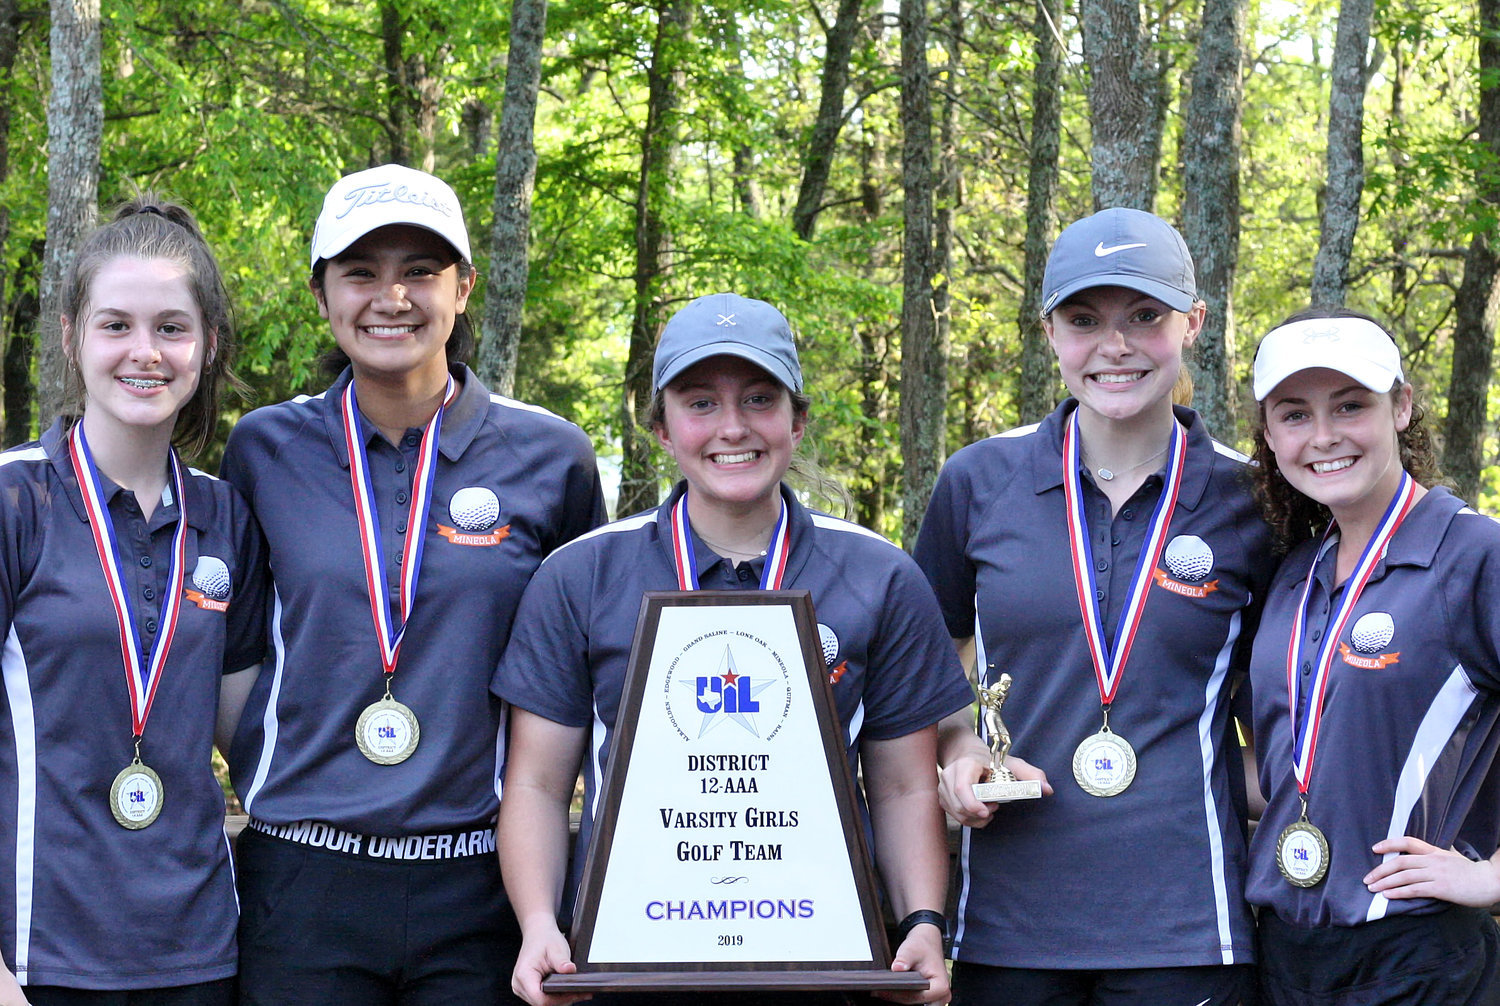 Mineola's 2019 District 12-3A girls golf championship team.  From left are Makayla Mahlstadt, Valerie Garcia, Melea Bedford, Ava Johnson and Sunni Ruffin.